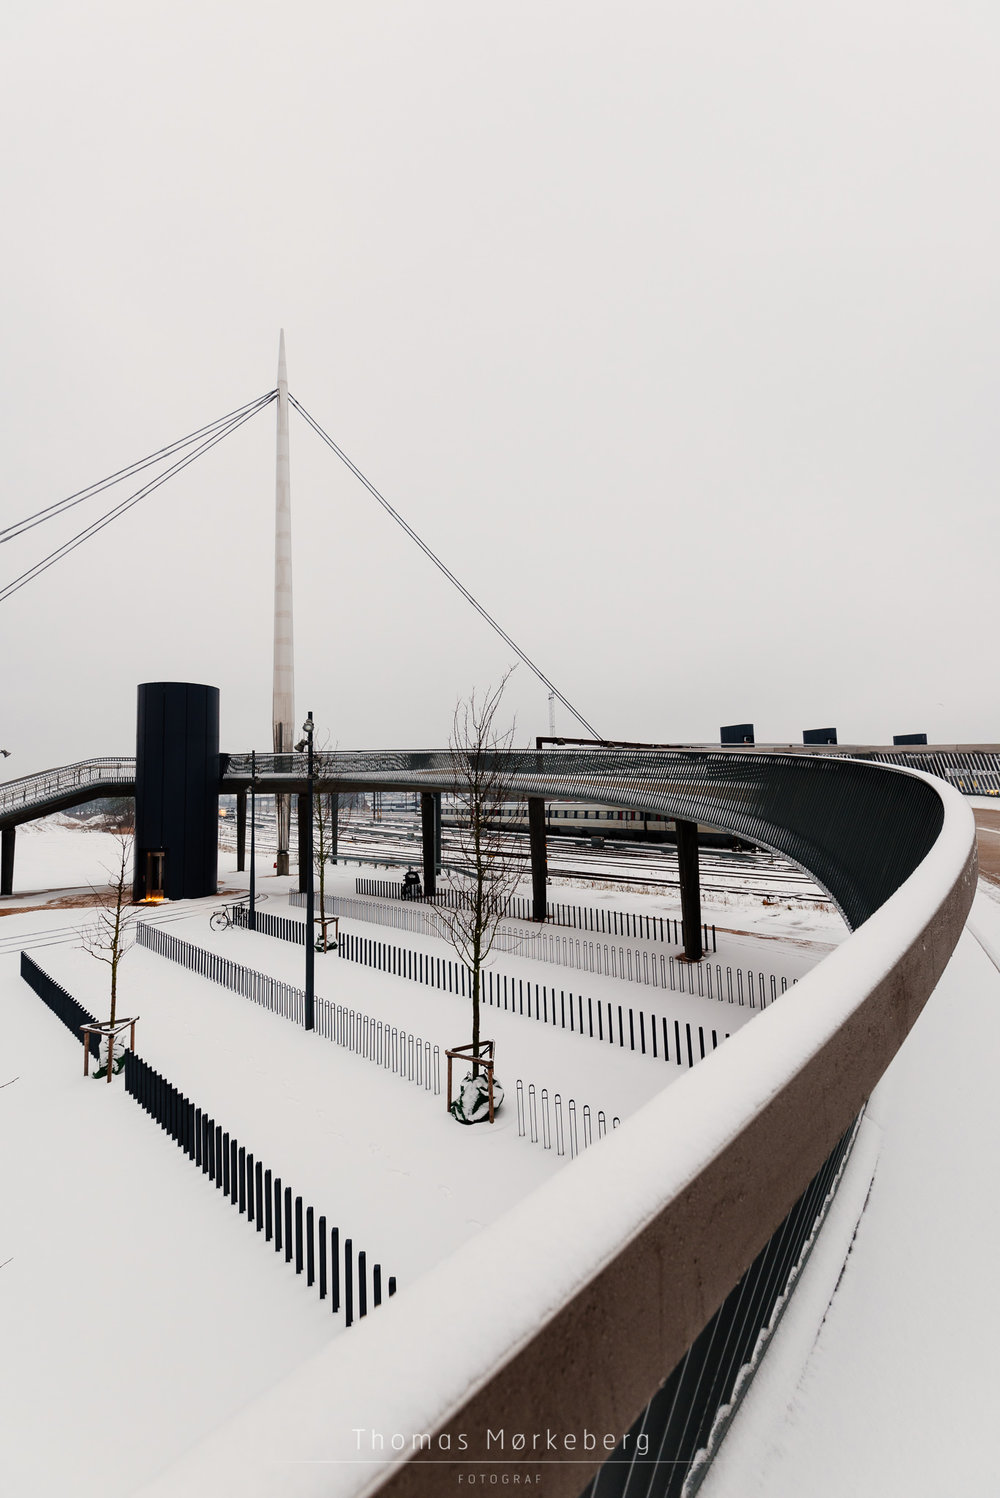 Bicycle parking in snow at Byens bro (bridge) in Odense, Denmark